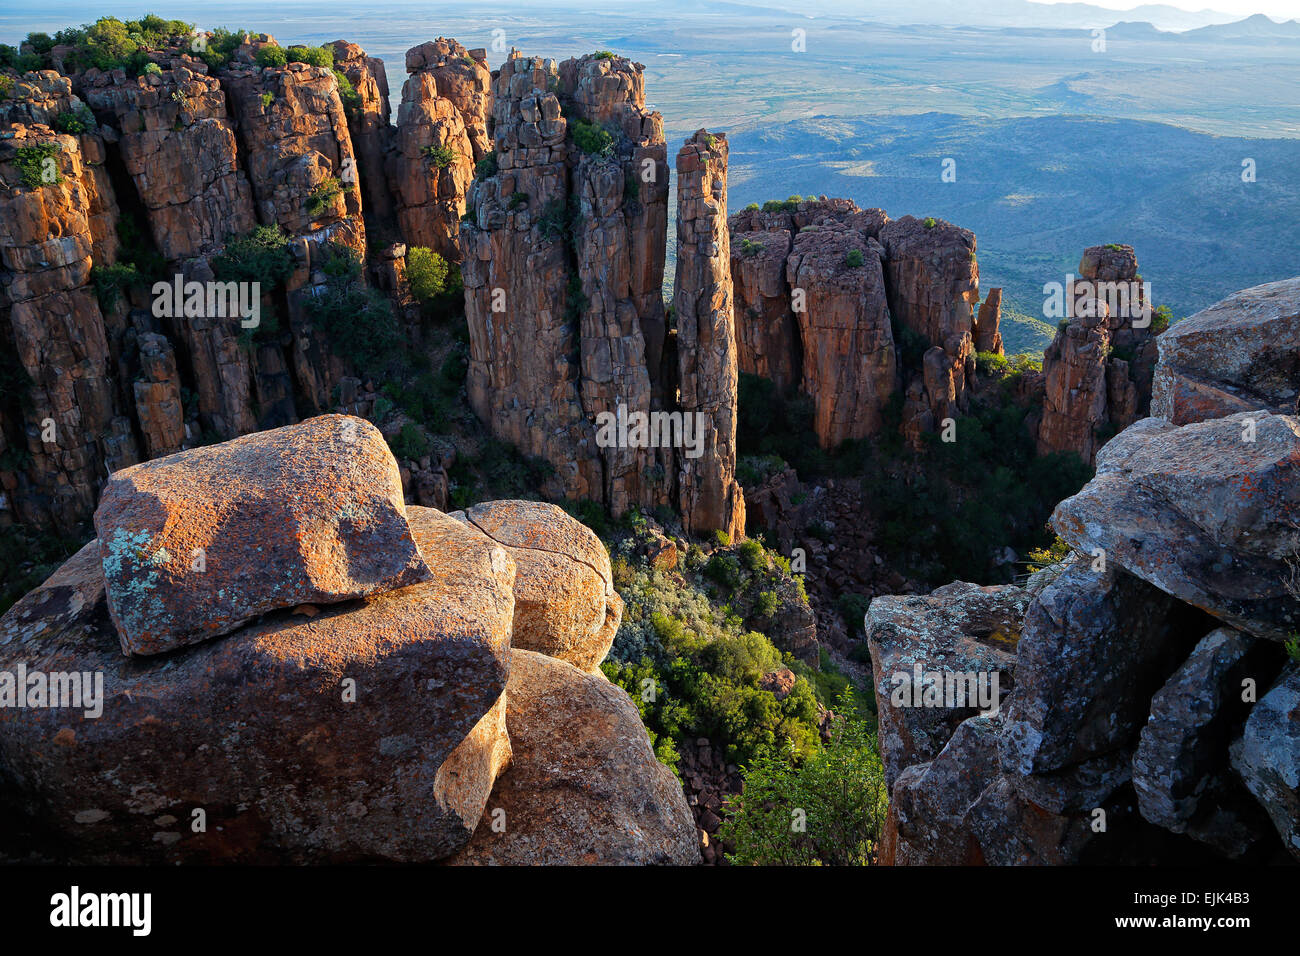 Valley of desolation, Camdeboo National Park, South Africa Stock Photo